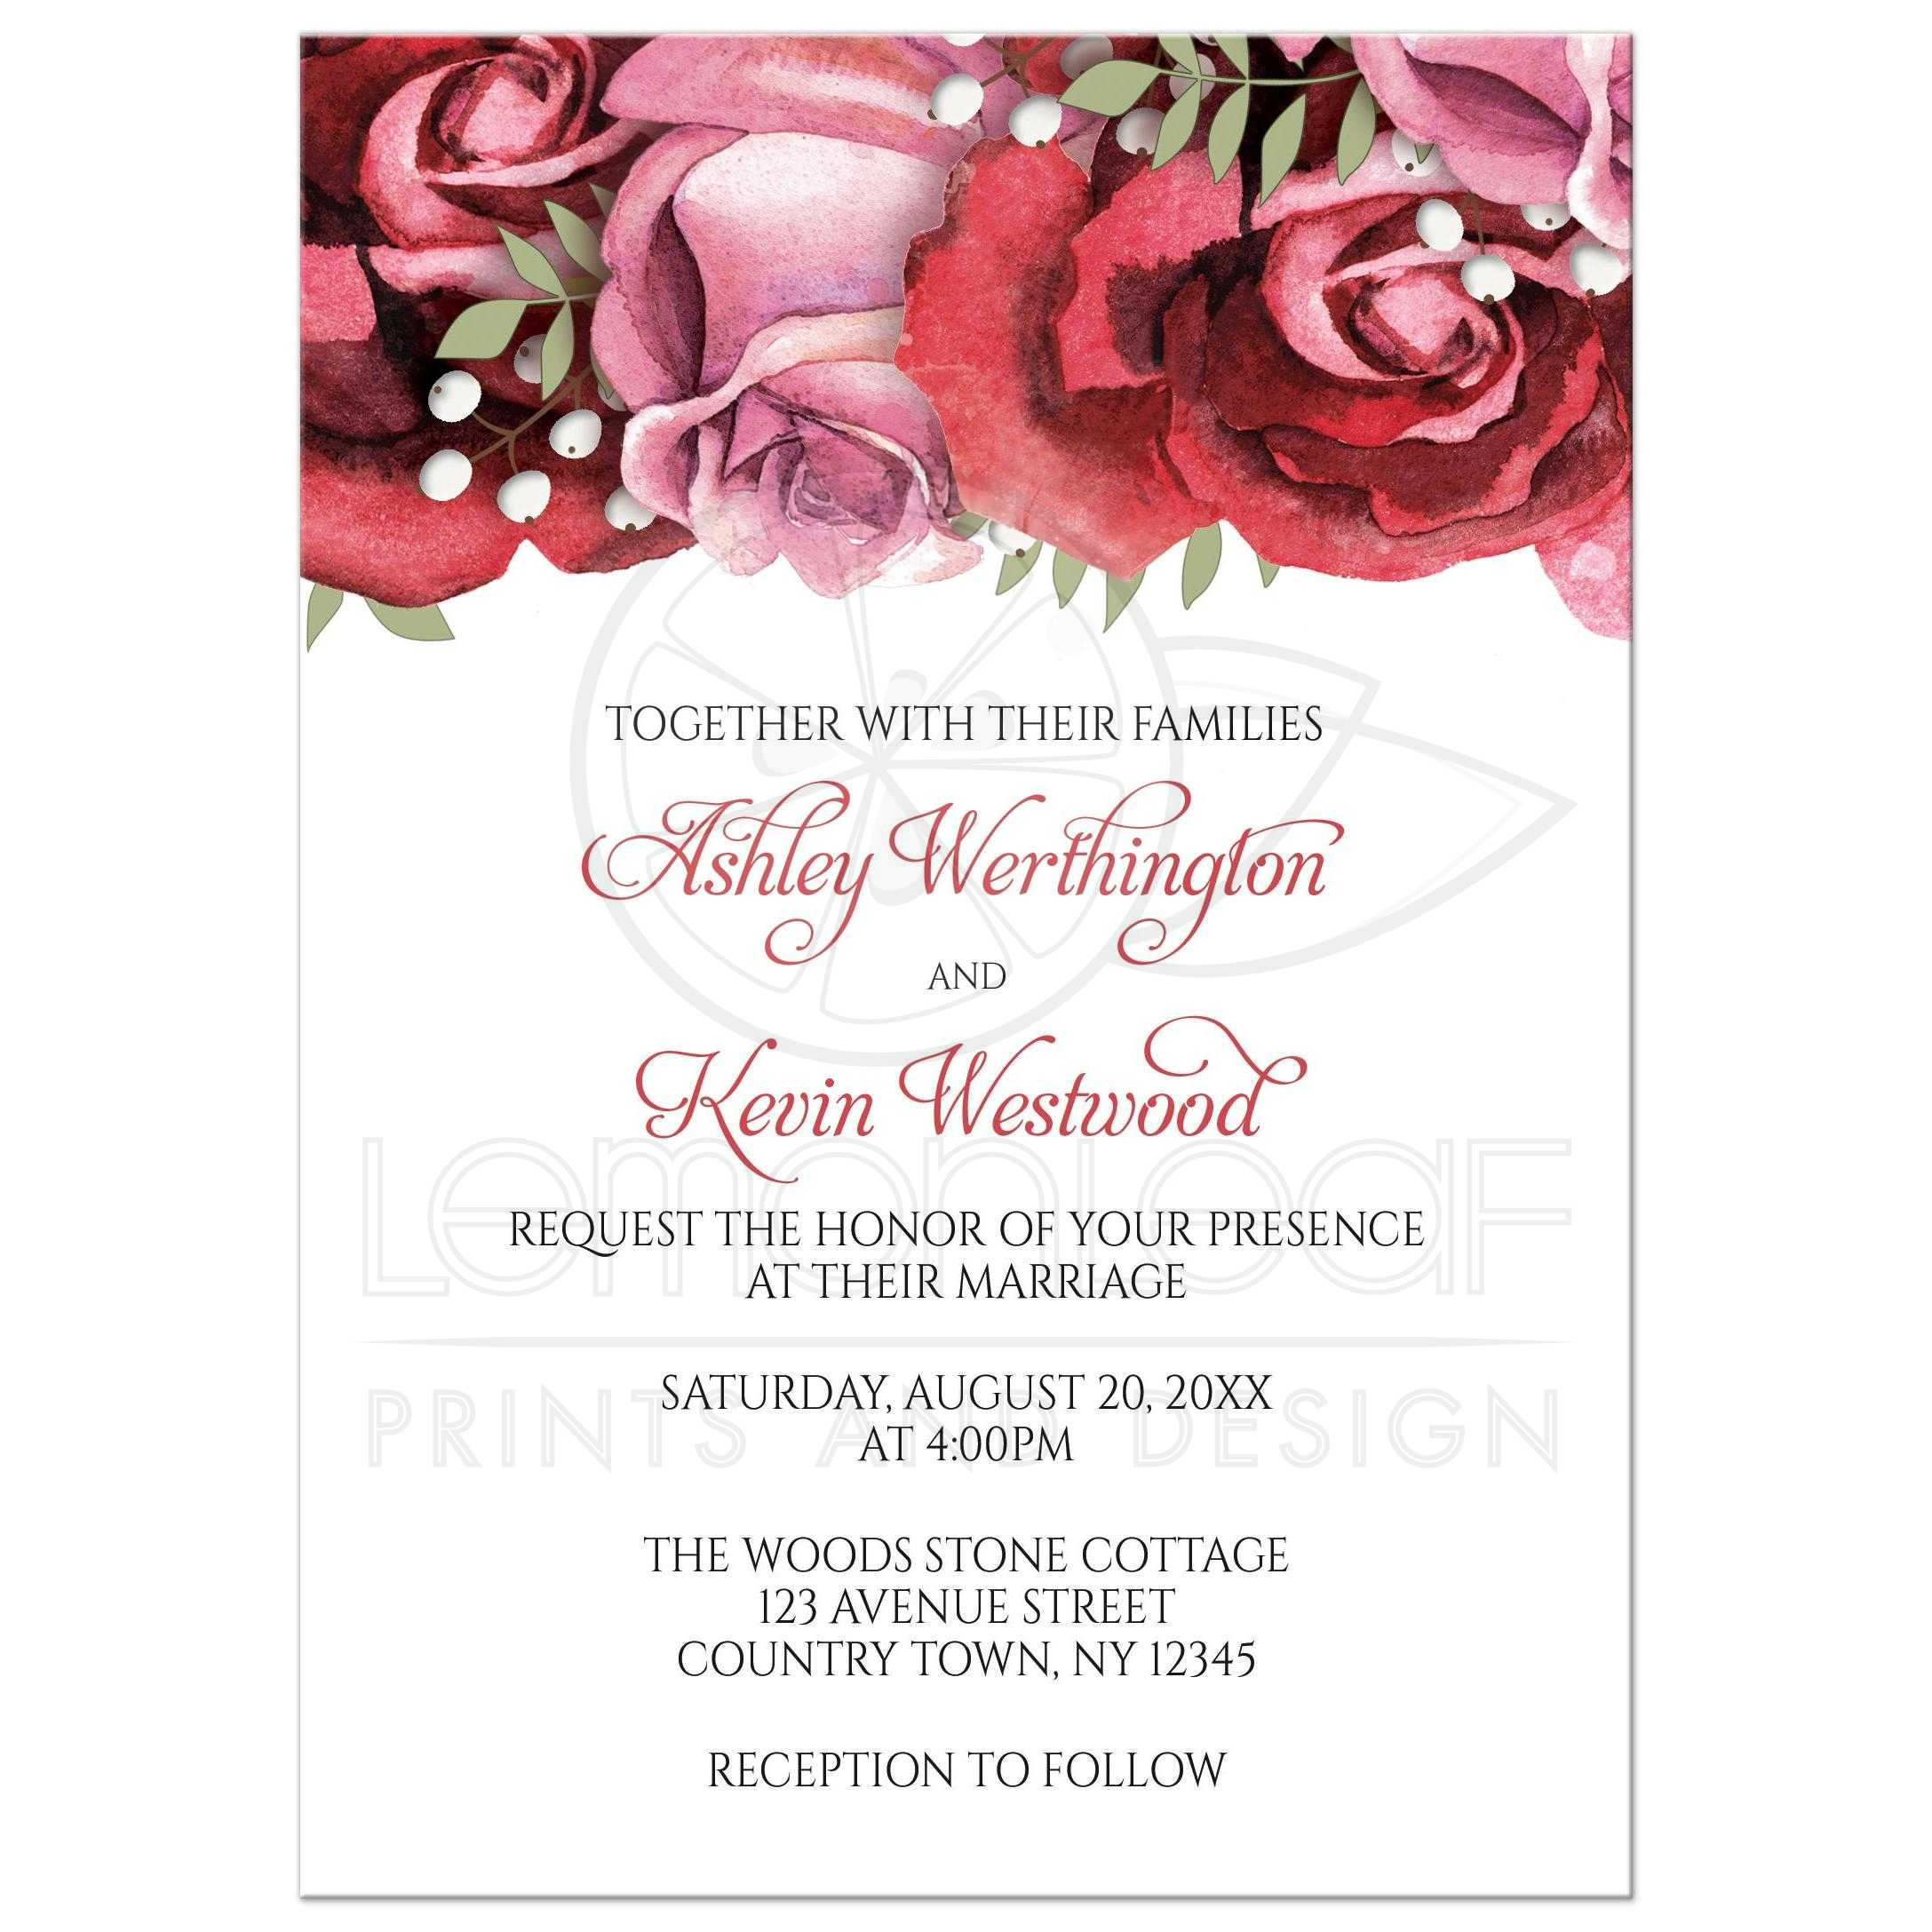 Wedding Invitations Burgundy Red Pink Rose